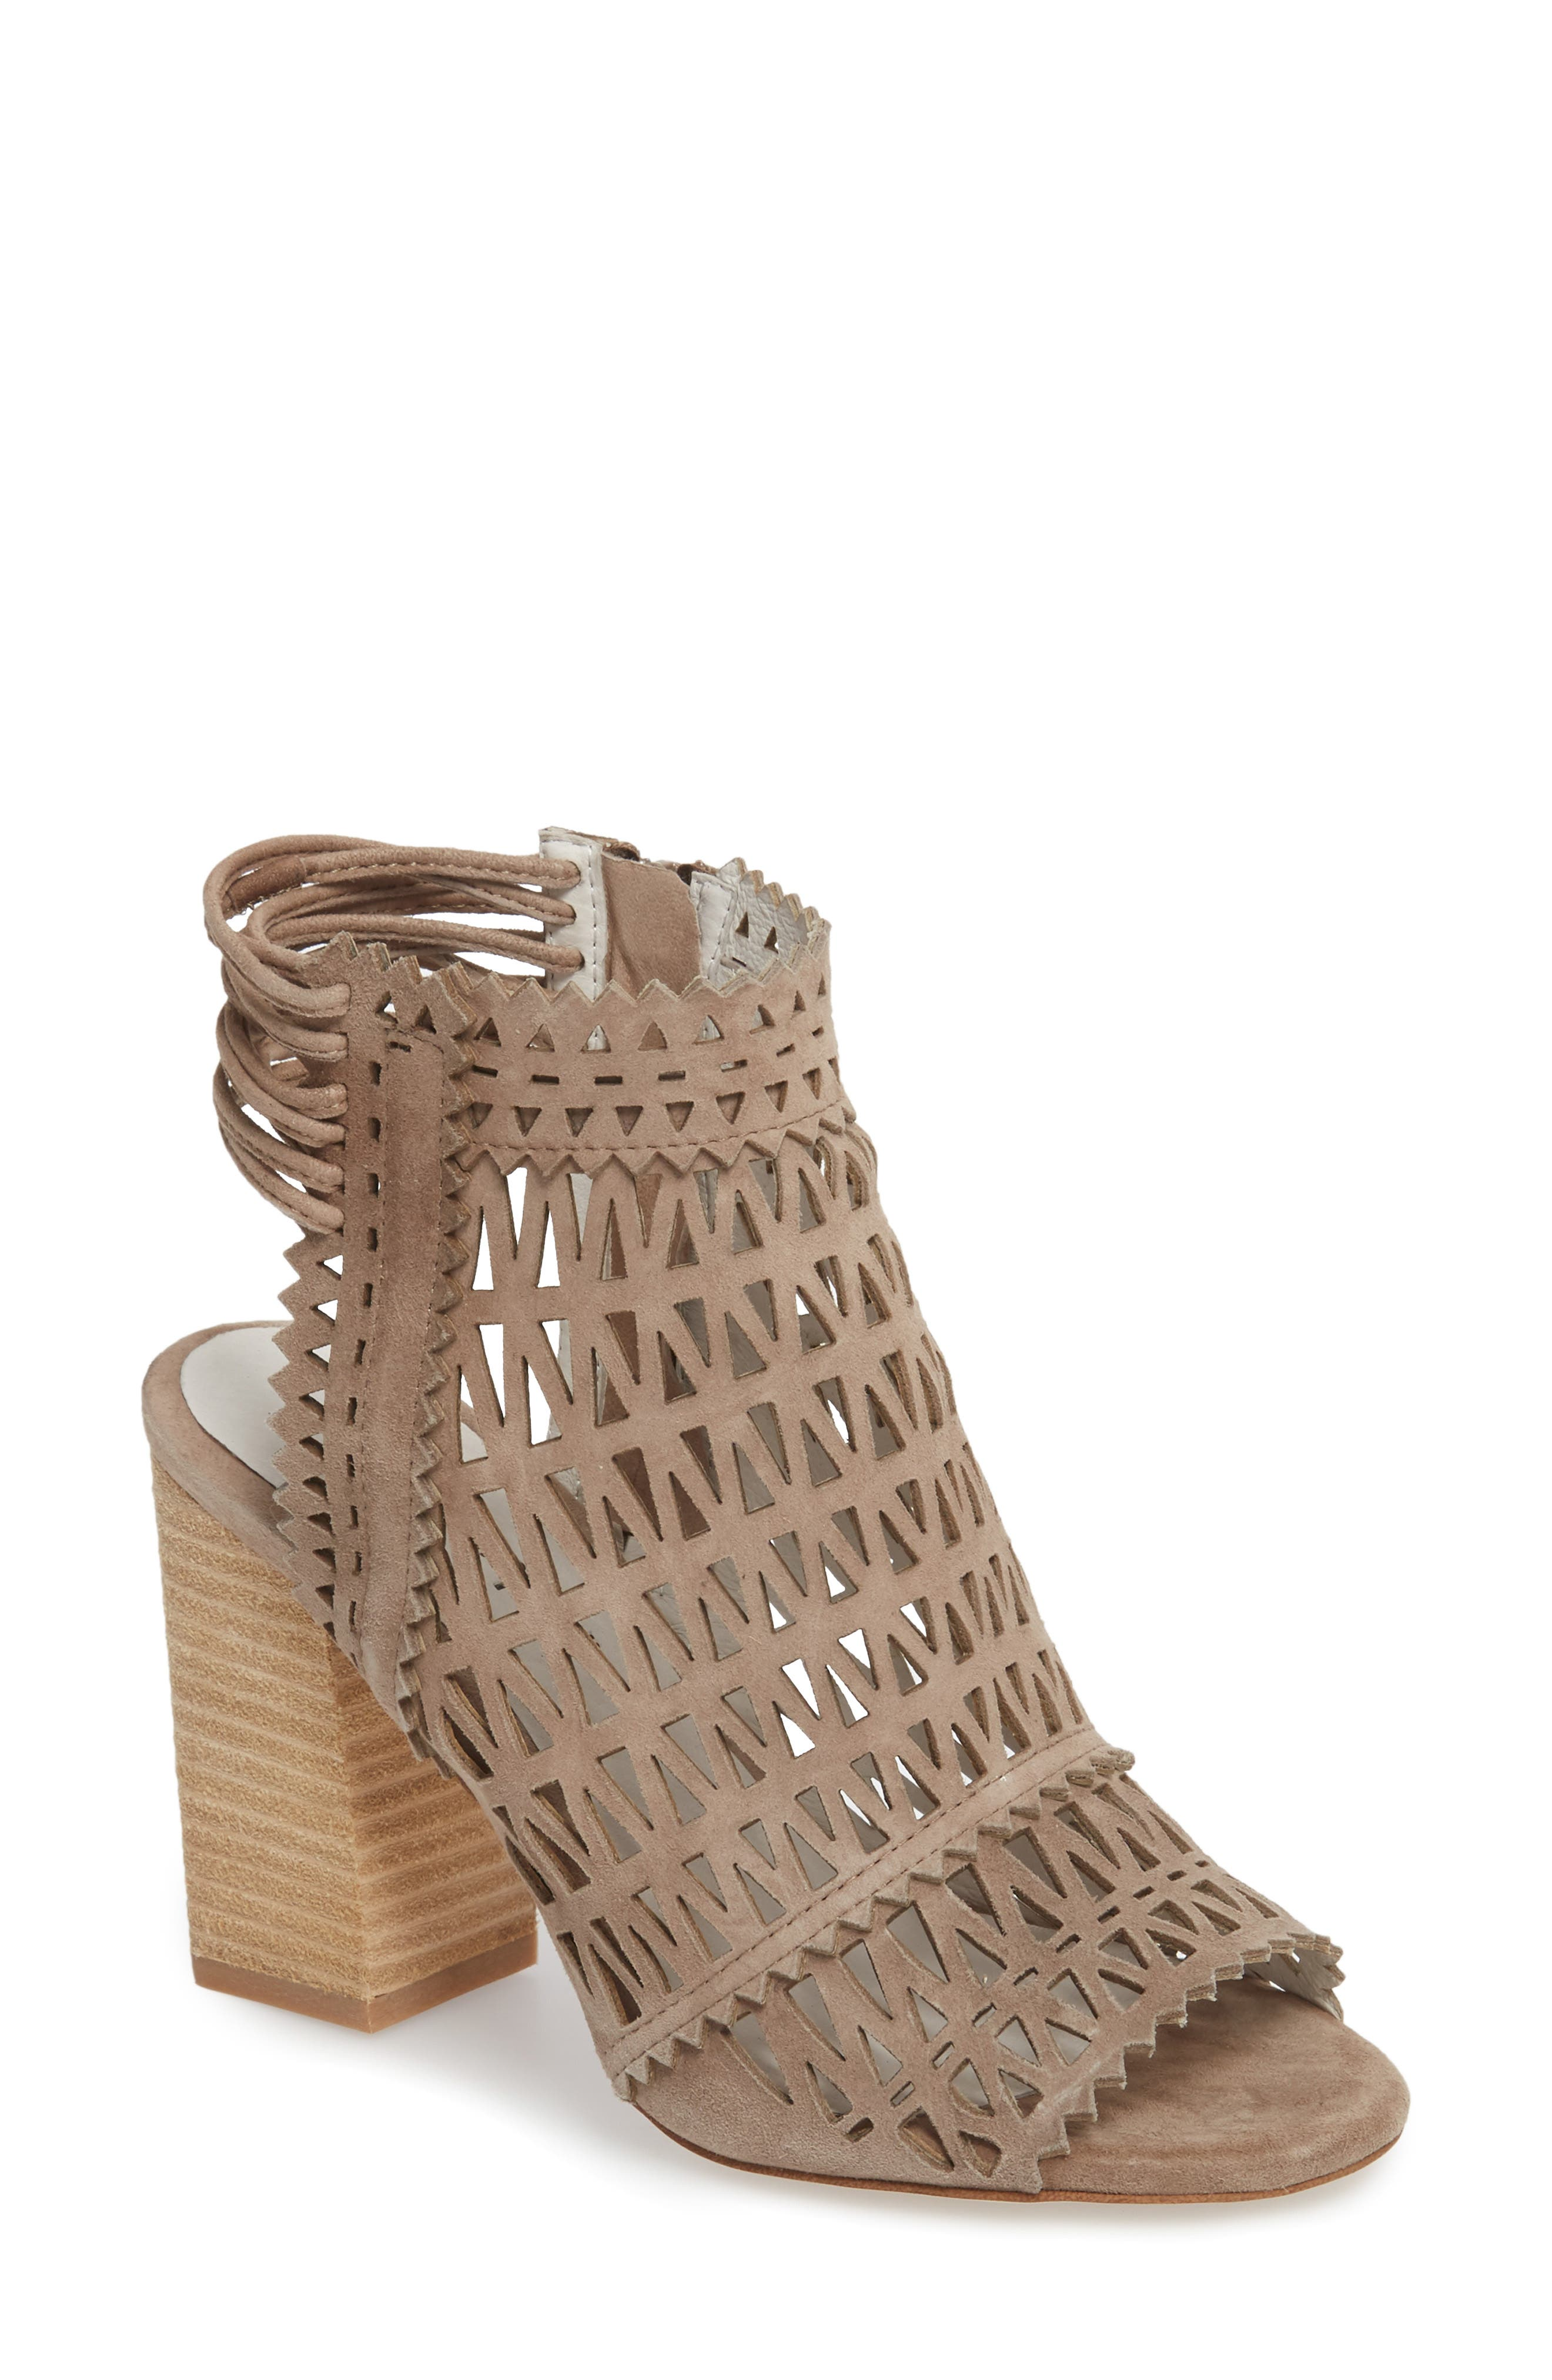 Ottawa Sandal,                         Main,                         color, TAUPE SUEDE